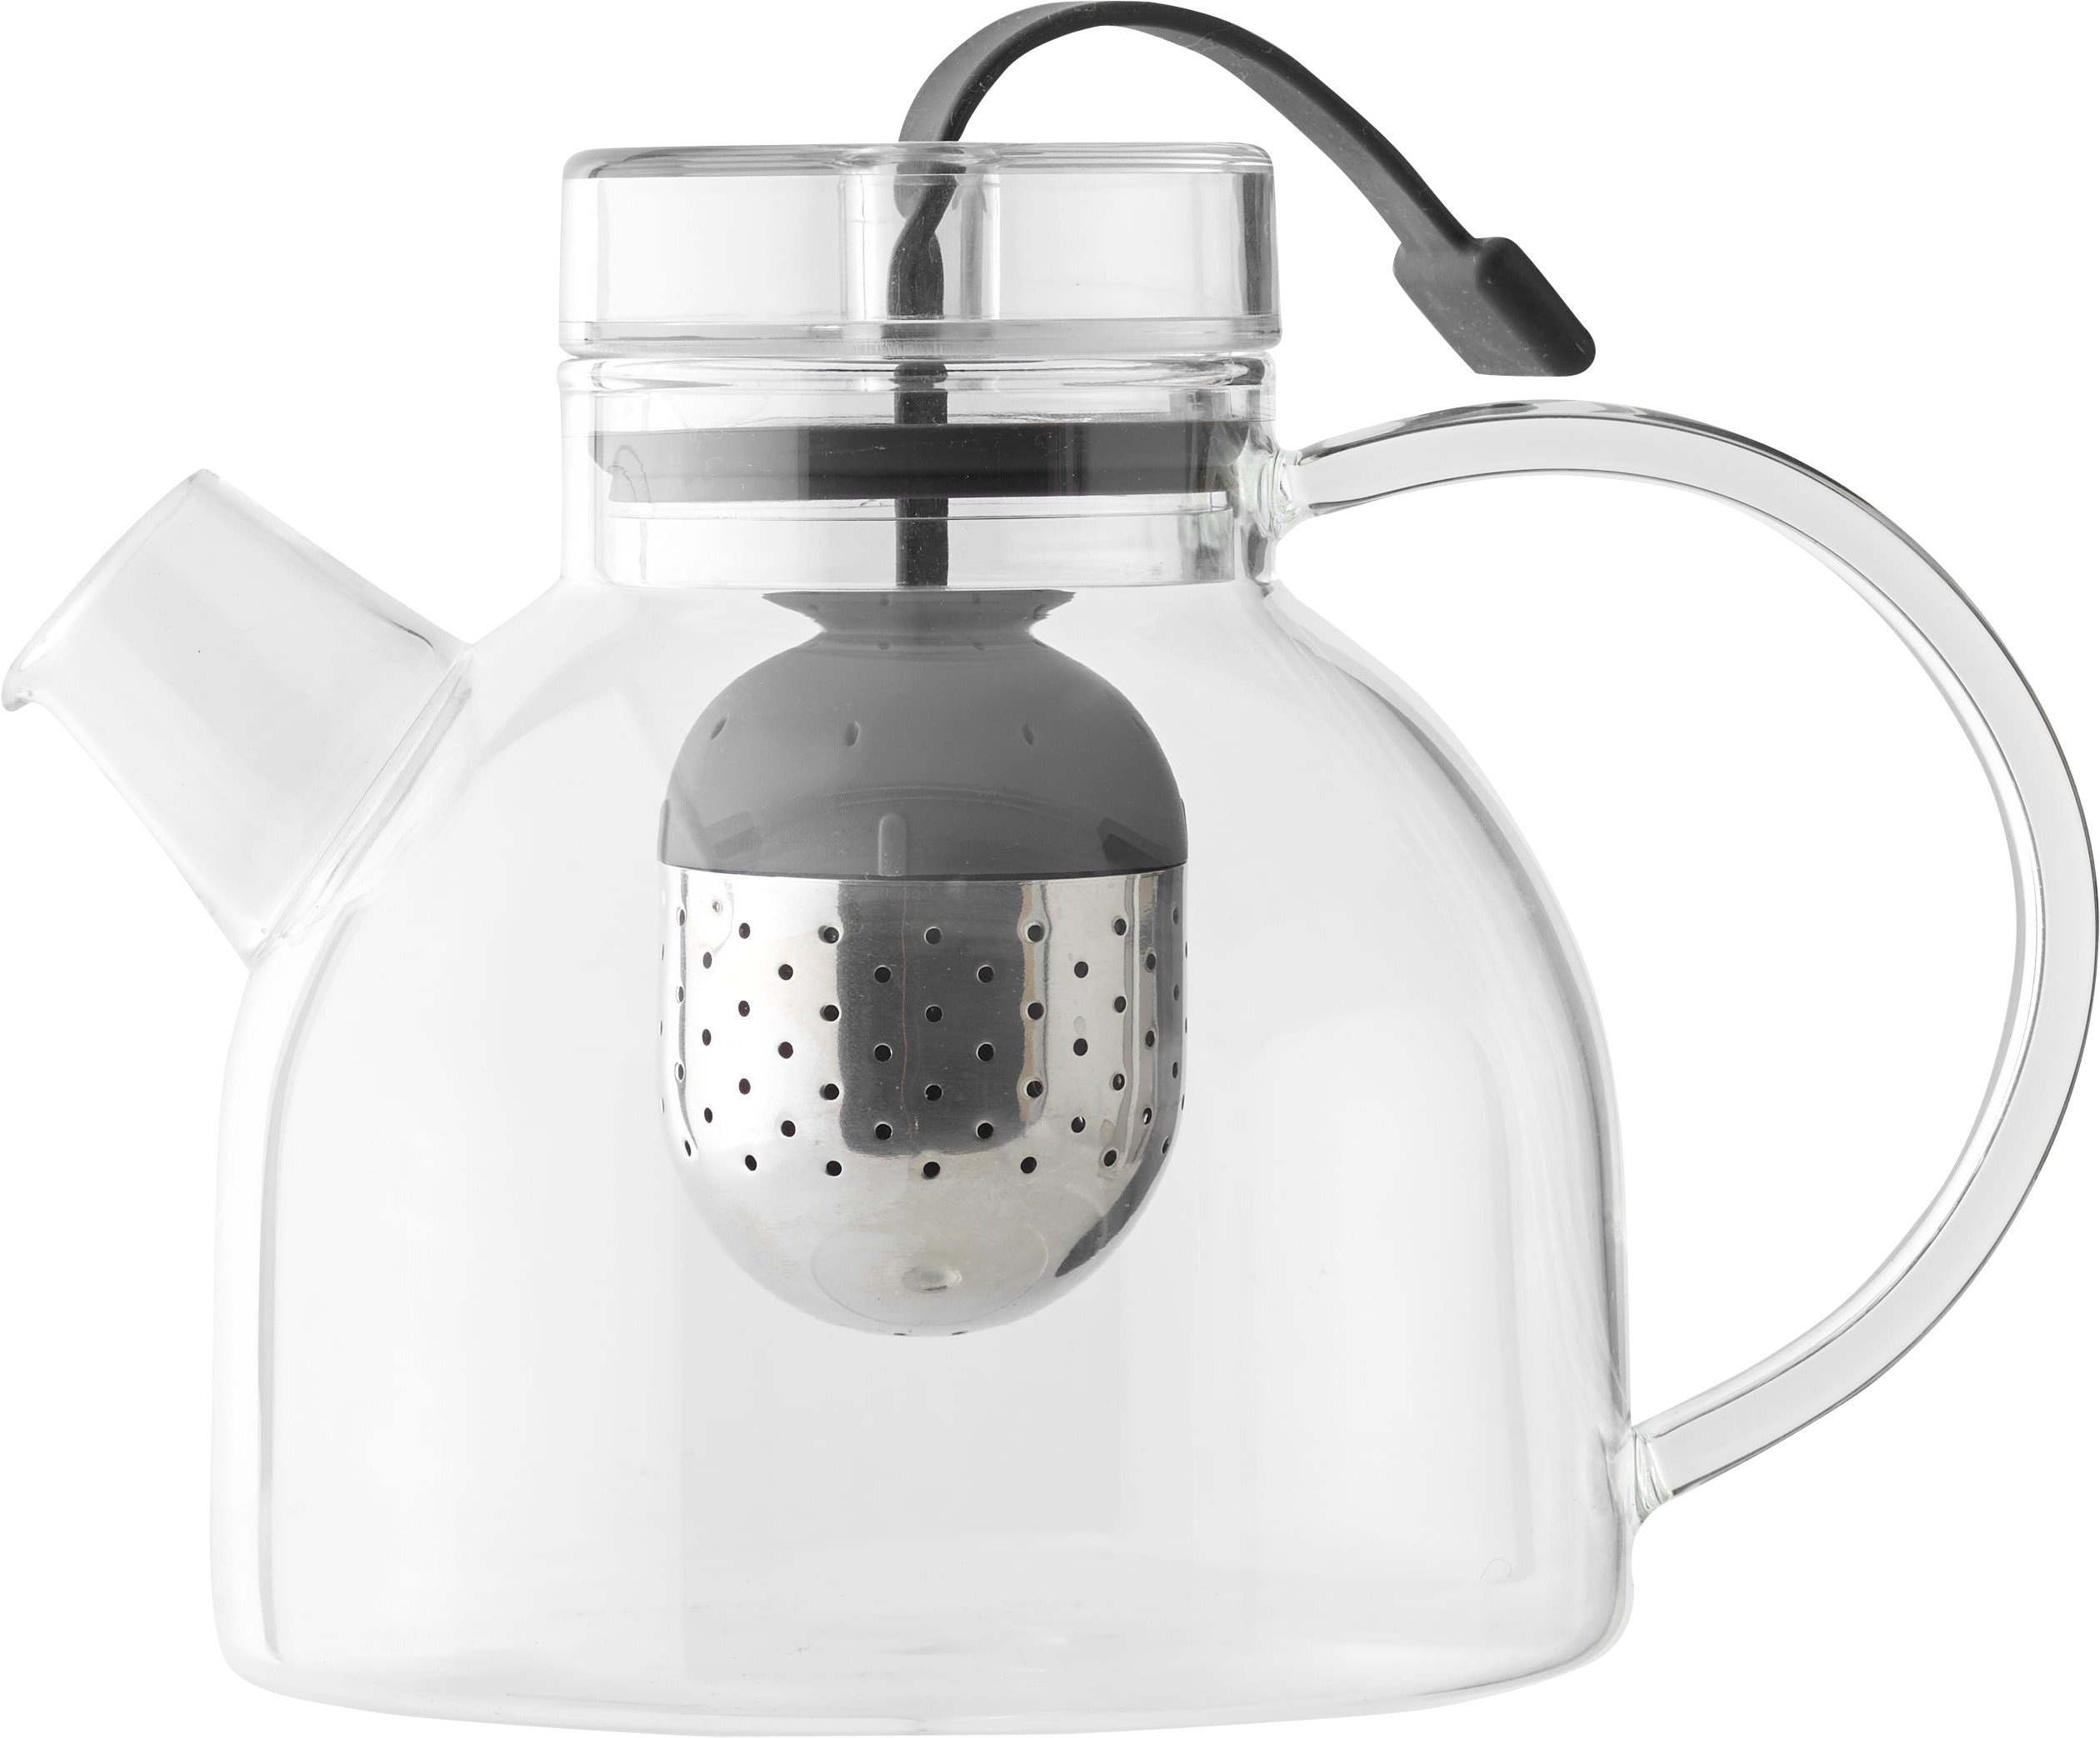 Kettle Teapot 0,75l, by Norm Architects for Menu